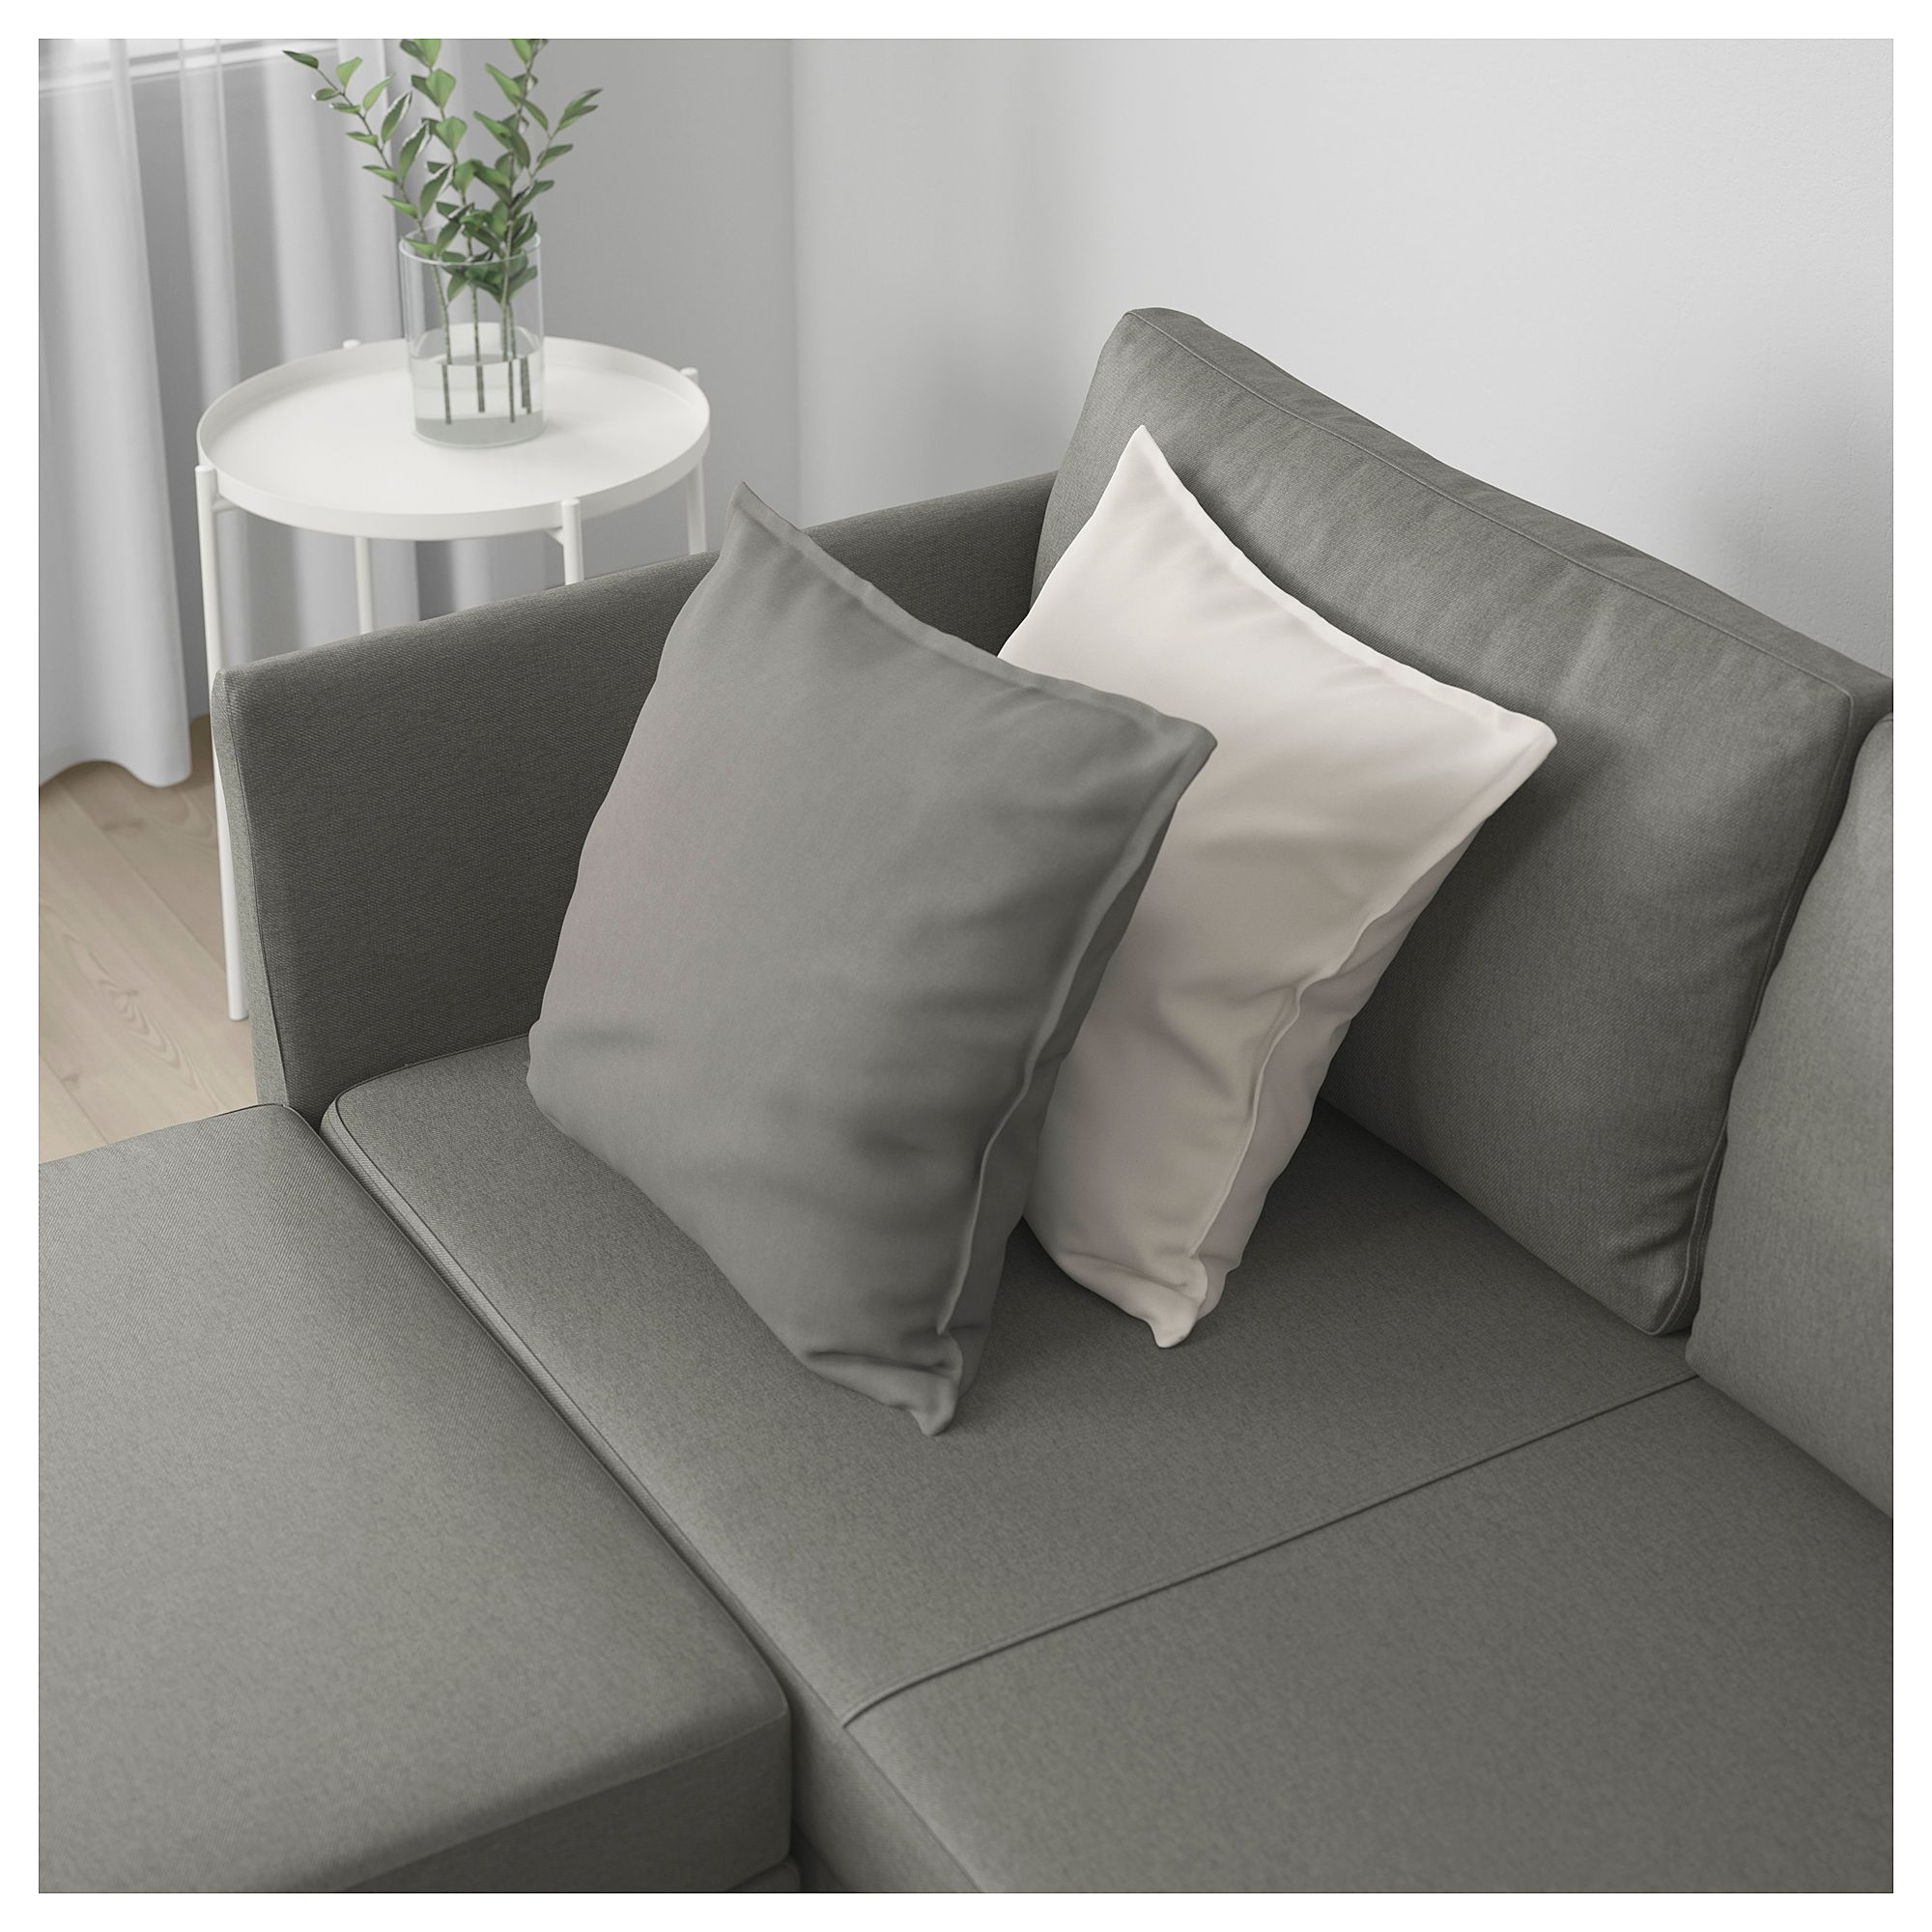 Conforama Divano Toffee Ikea BrÅthult Corner Sofa Bed Borred Gray Green Products